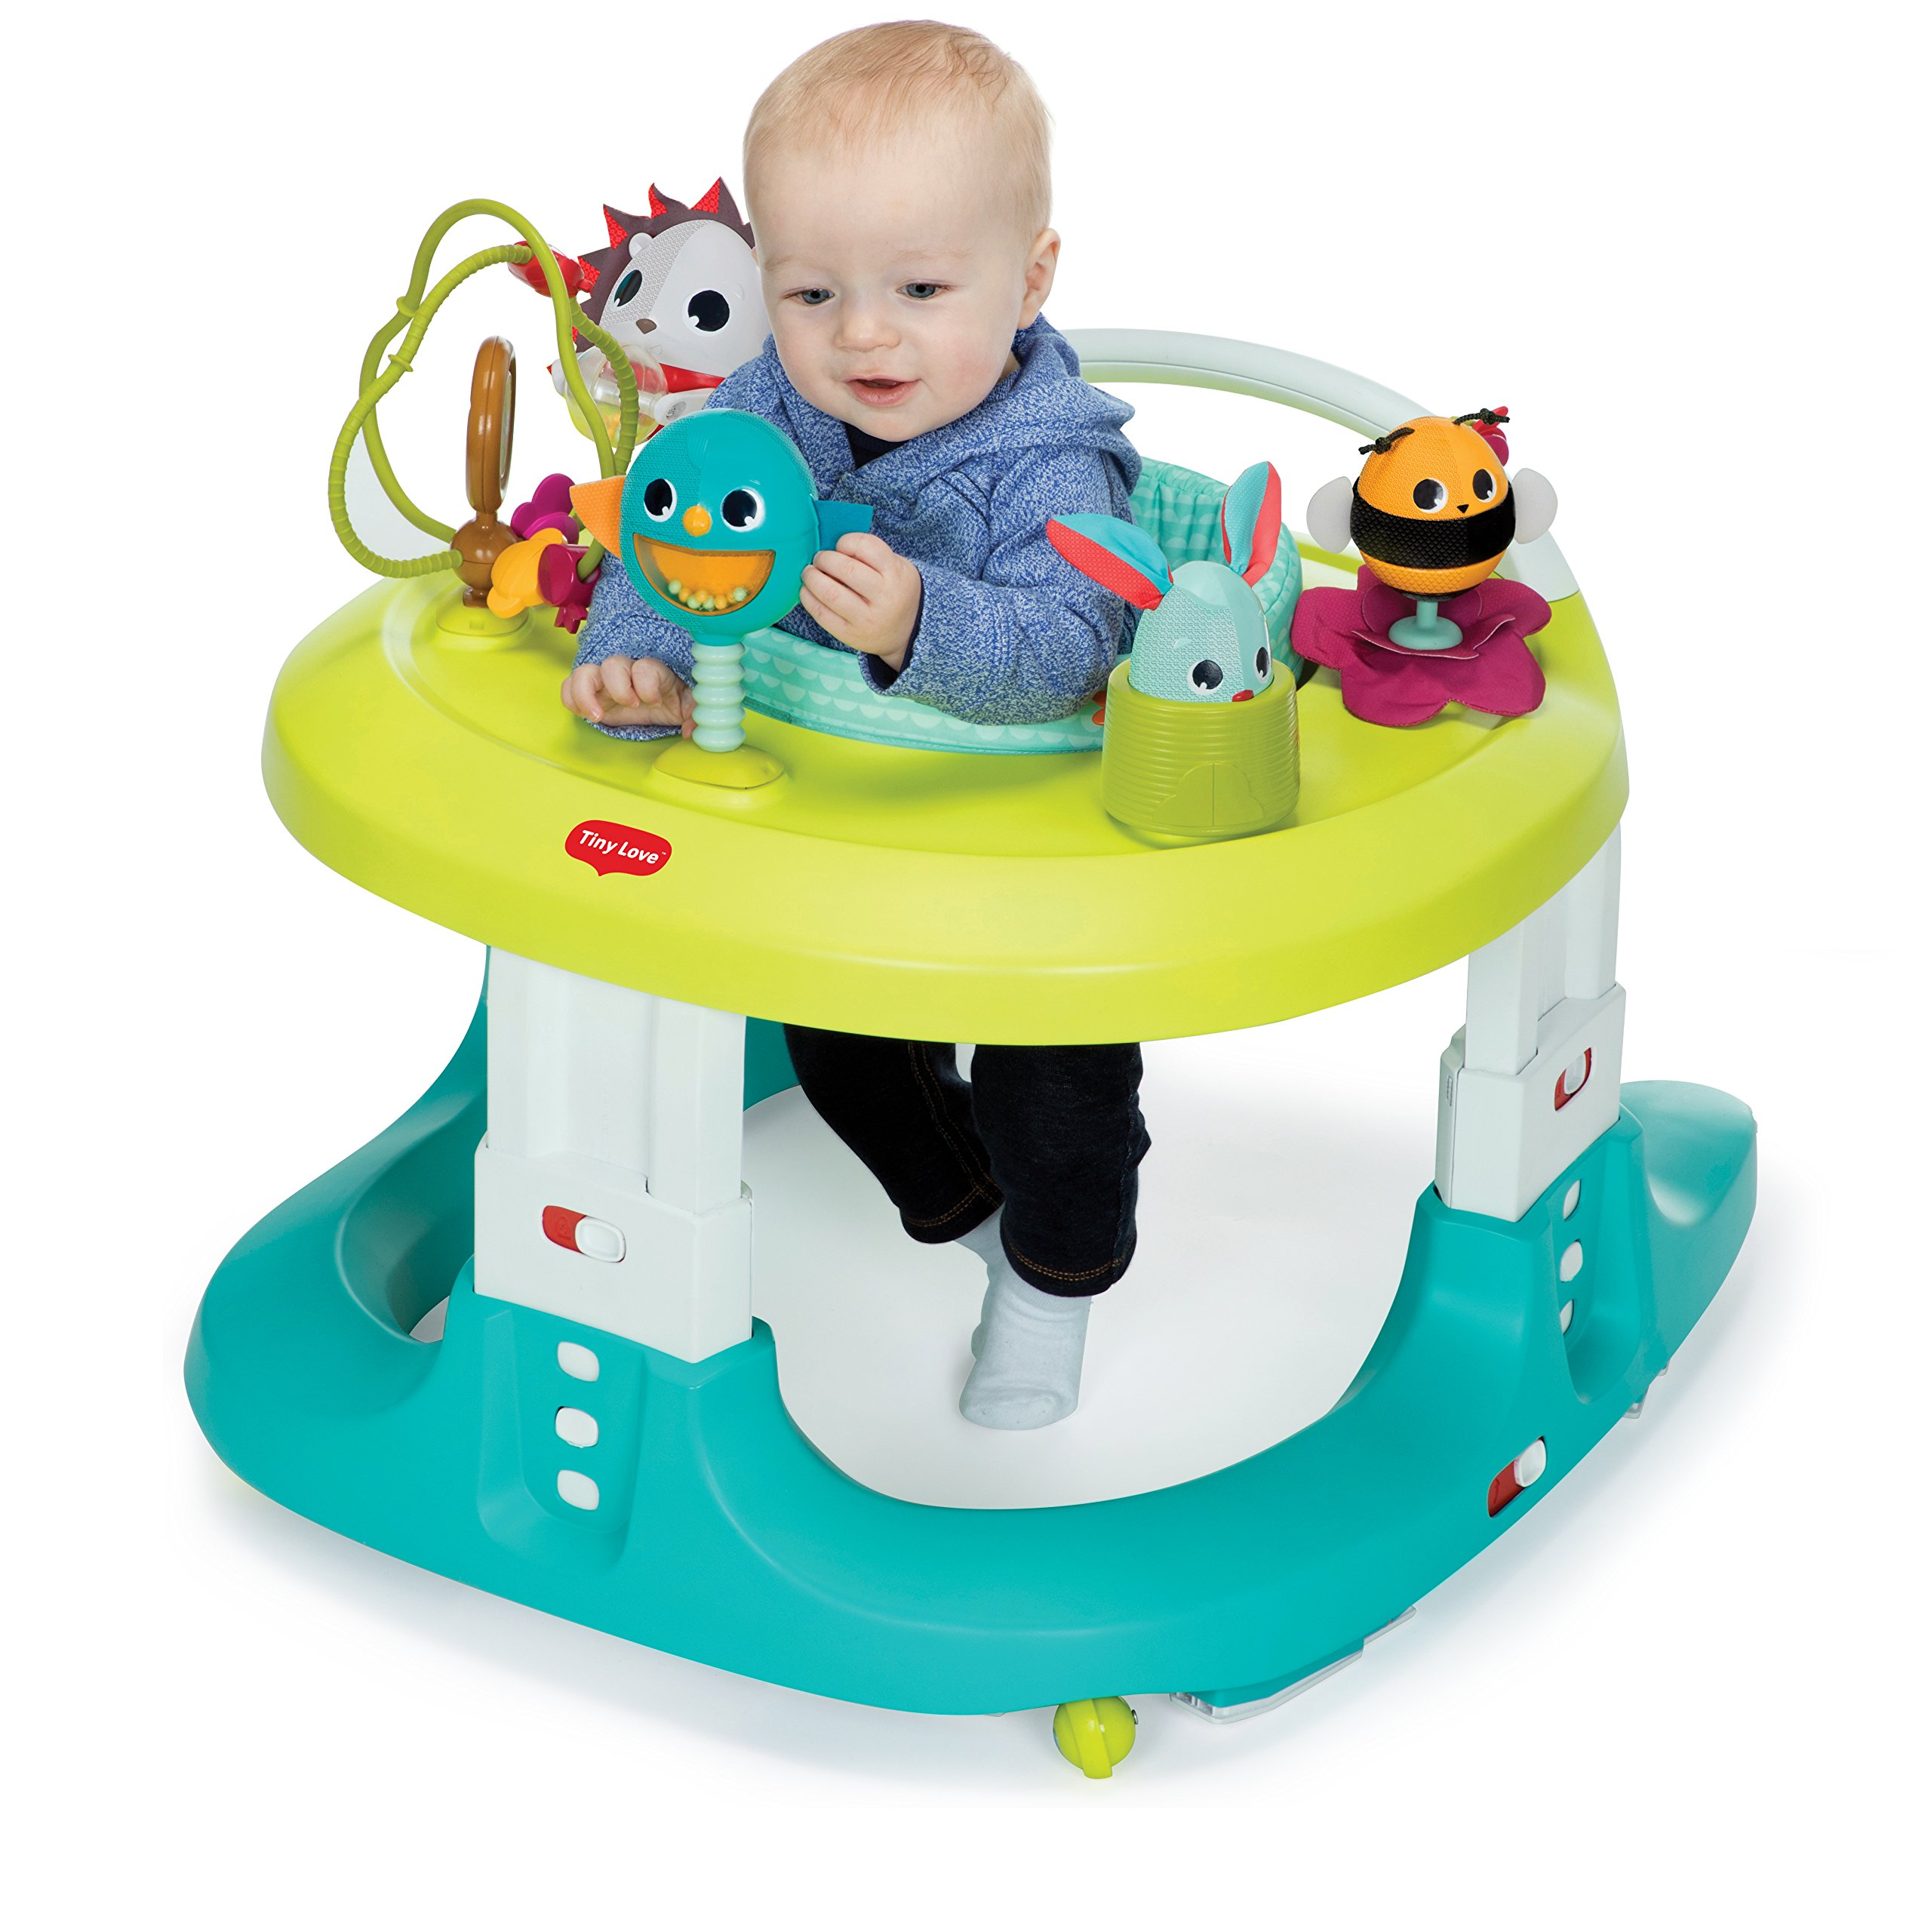 Tiny Love Meadow Days Here I Grow 4-in-1 Baby Walker and Mobile Activity Center by Tiny Love (Image #7)